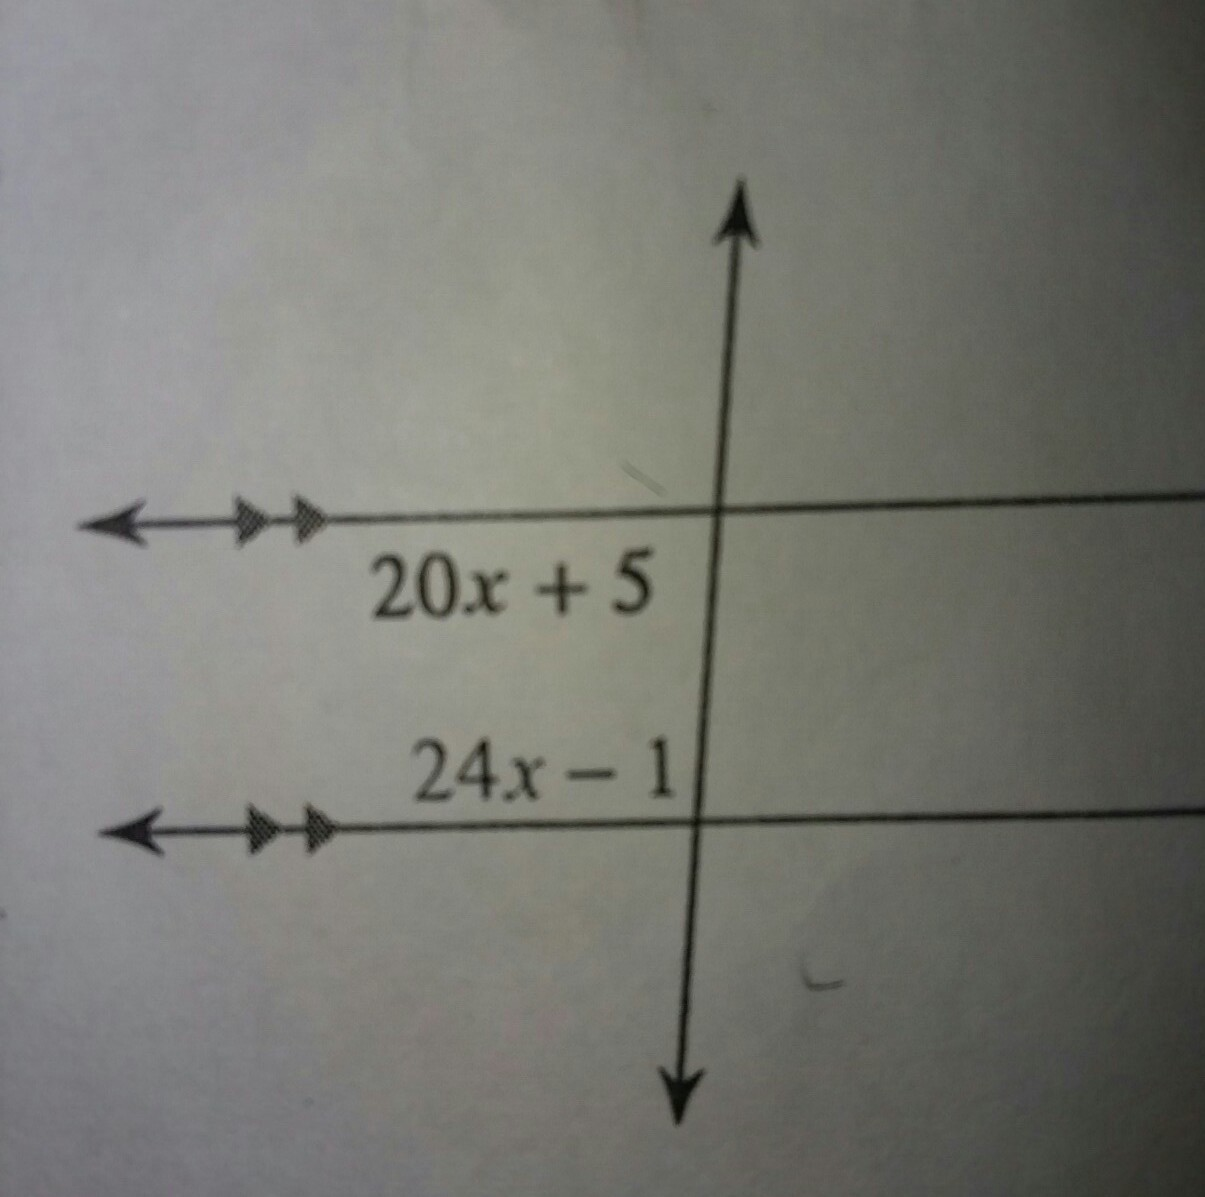 Find The Measure Of The Angle Indicated In Bold